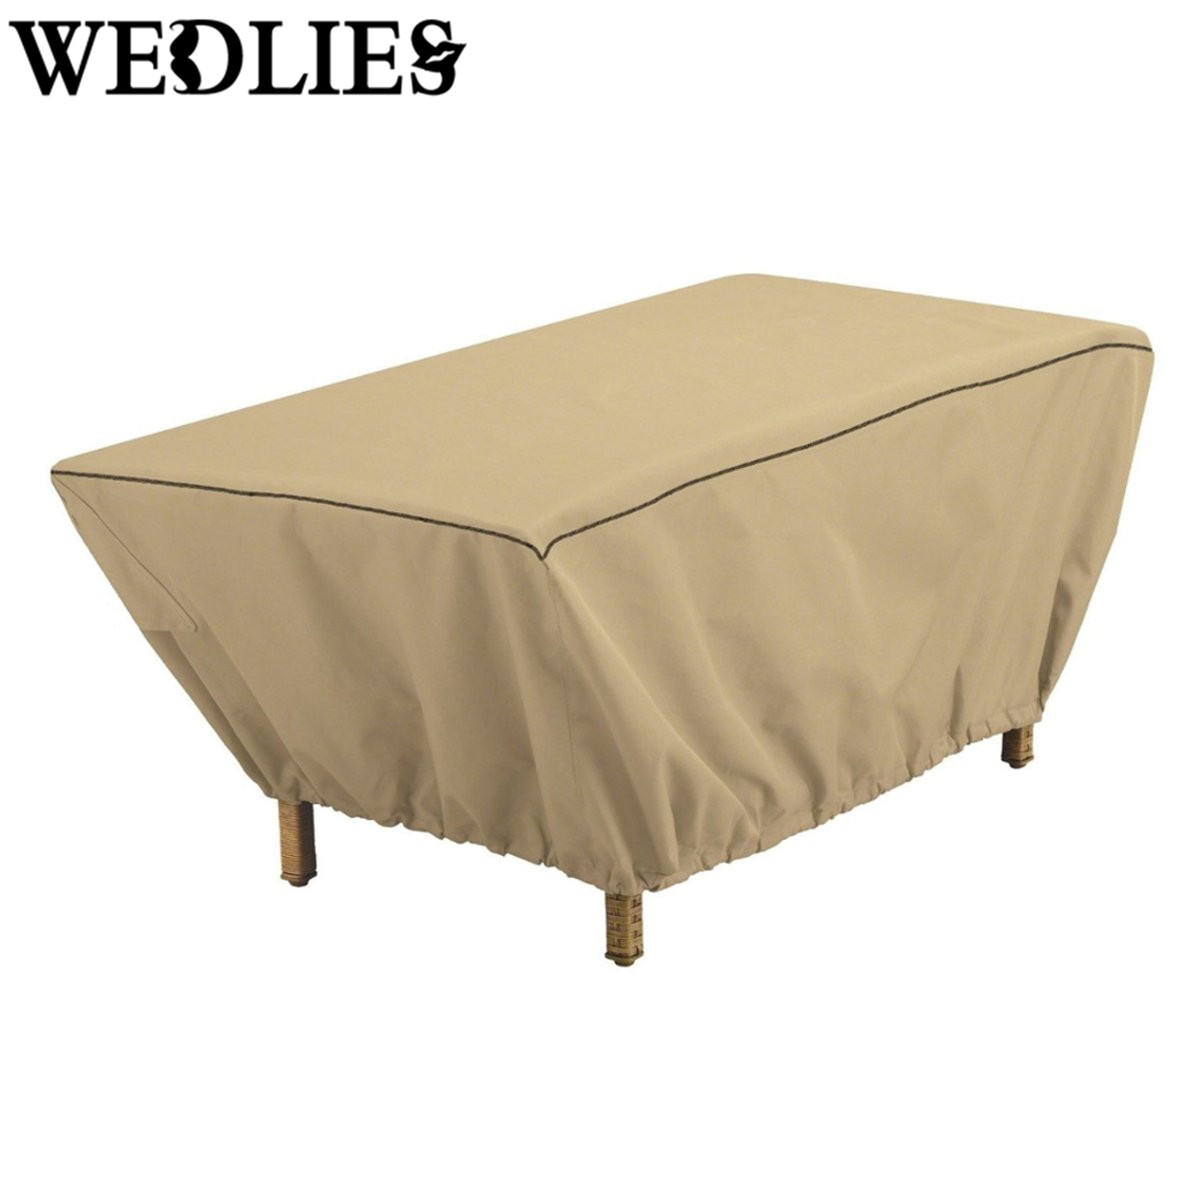 48 Inch Rectangular Patio Coffee Table Cover Garden ...